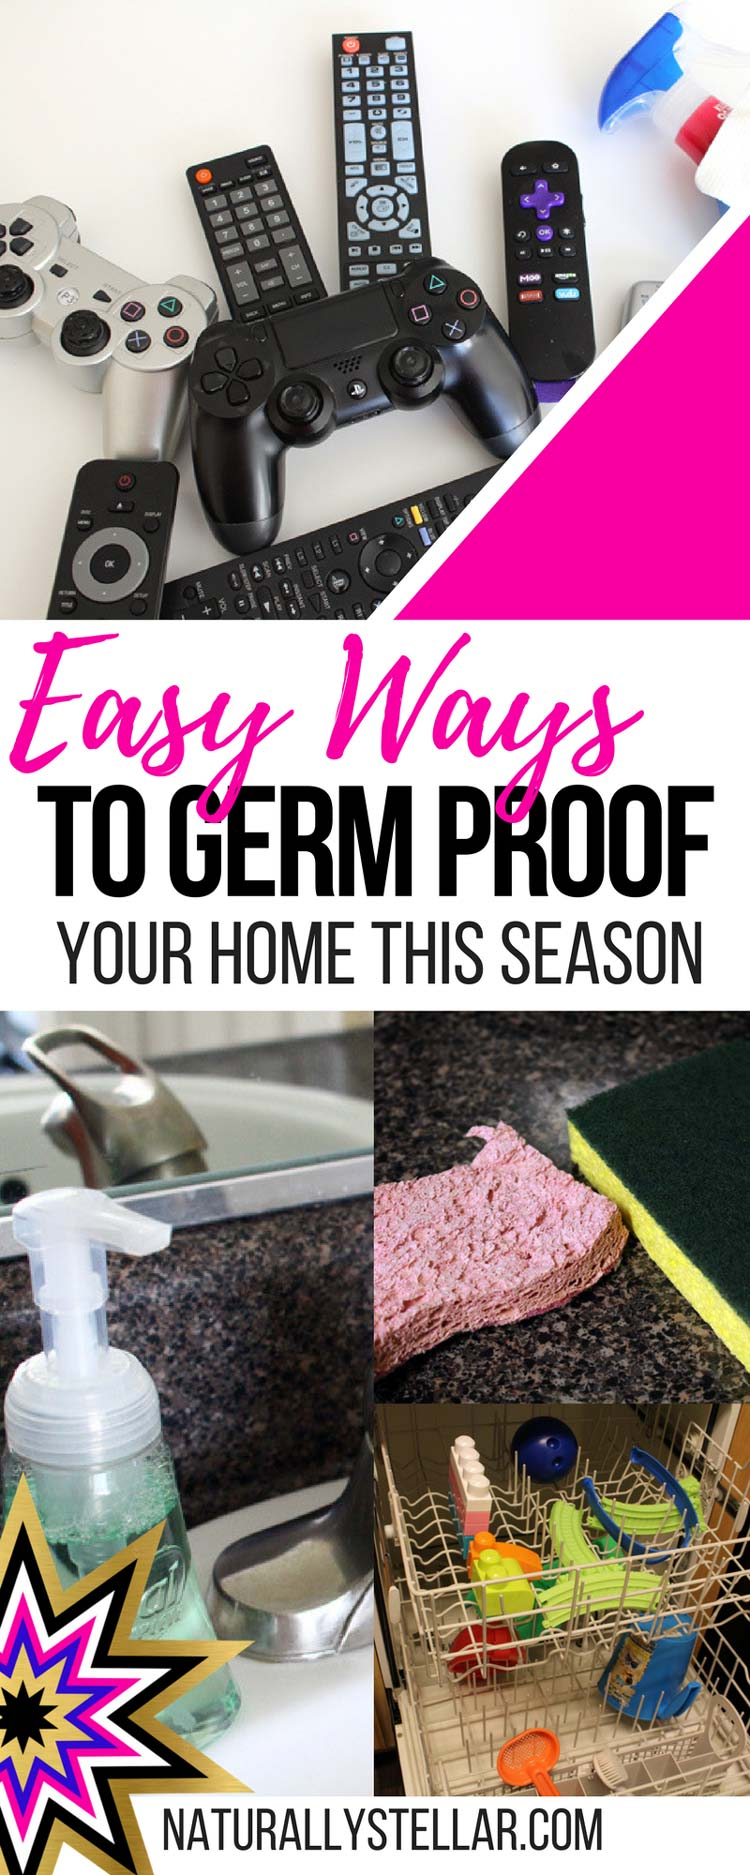 Easy Ways To Germ Proof Your Home | Naturally Stellar